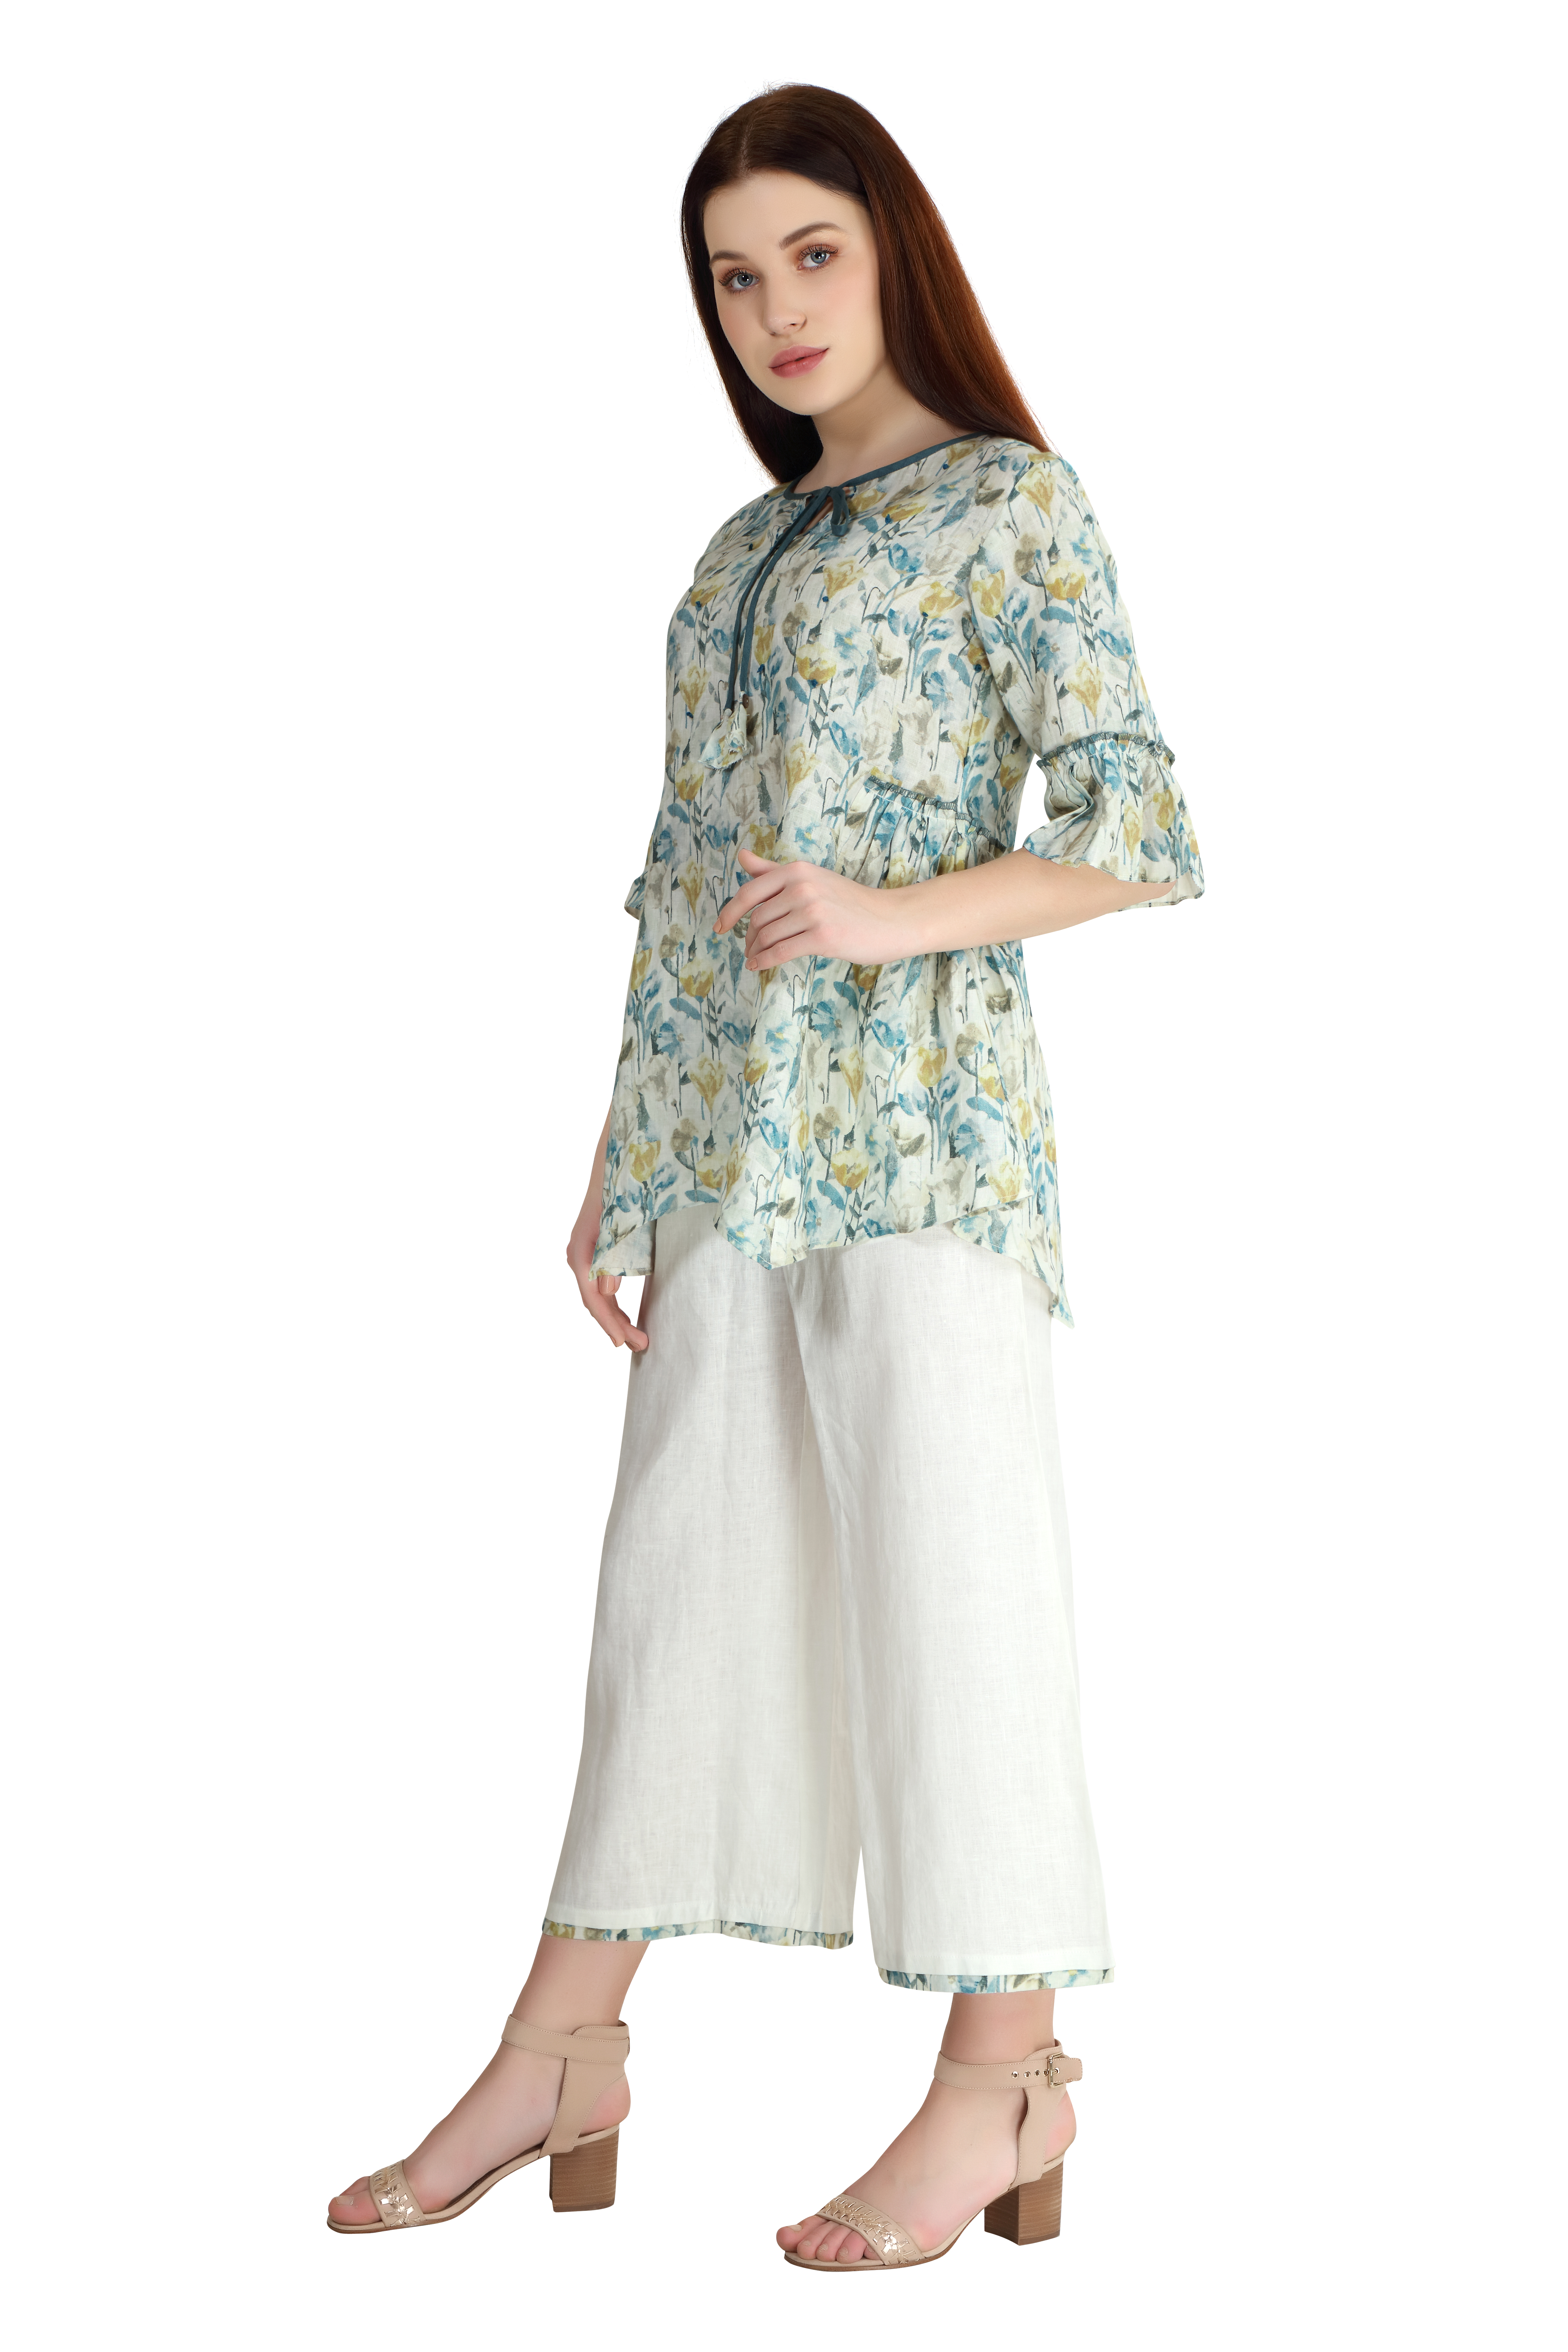 202007 White Gardenia Linen Tunic And Culottes Coord Set XS - White And Green (L,White and Green)